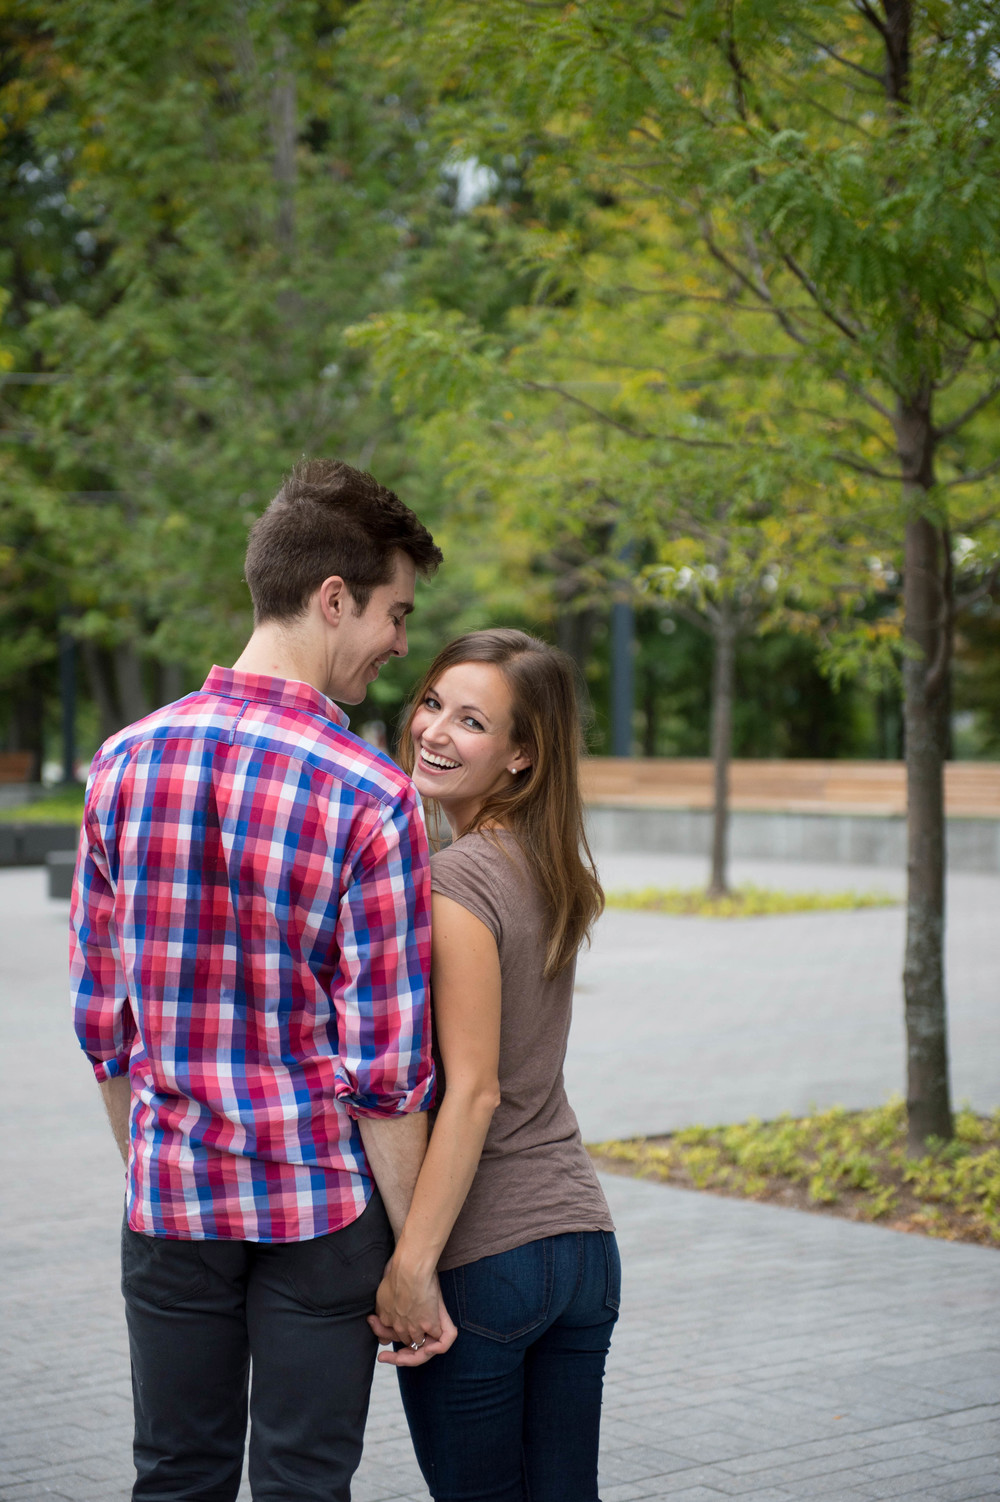 Boston_University_Engagement_Photo005.jpg